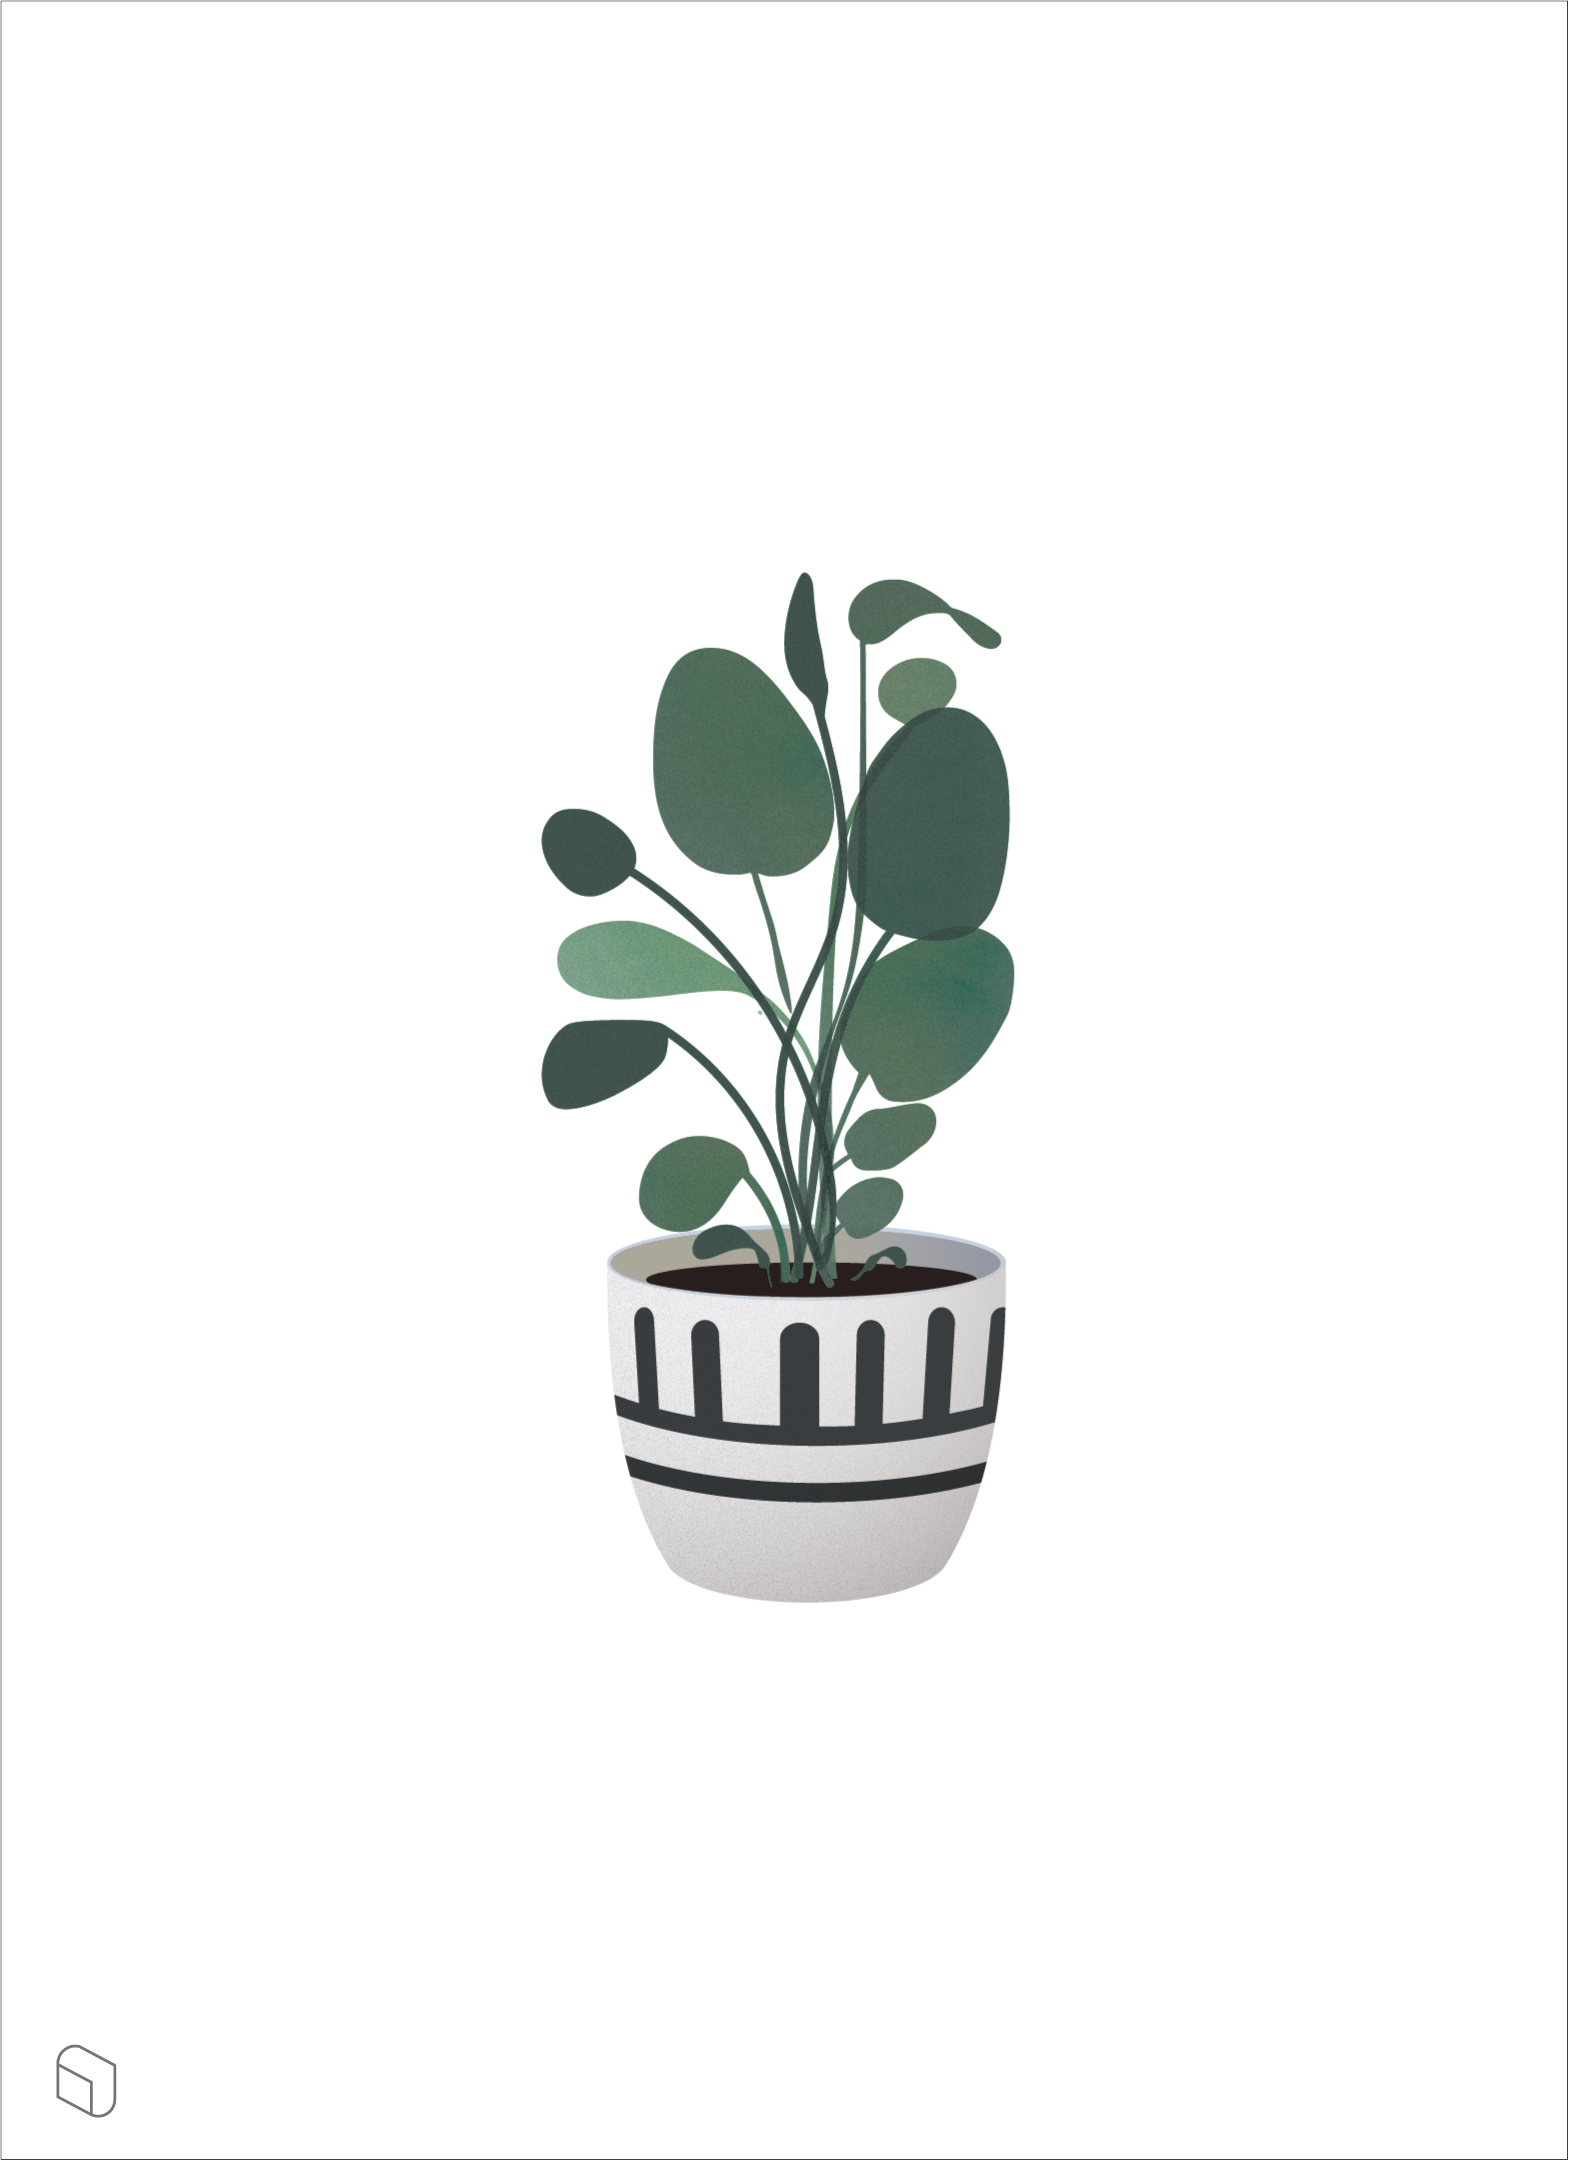 Flat vector indoor plants illustrations for architecture  amp interior design ai pdf cutout also pin by toffu on trees in plant illustration rh pinterest